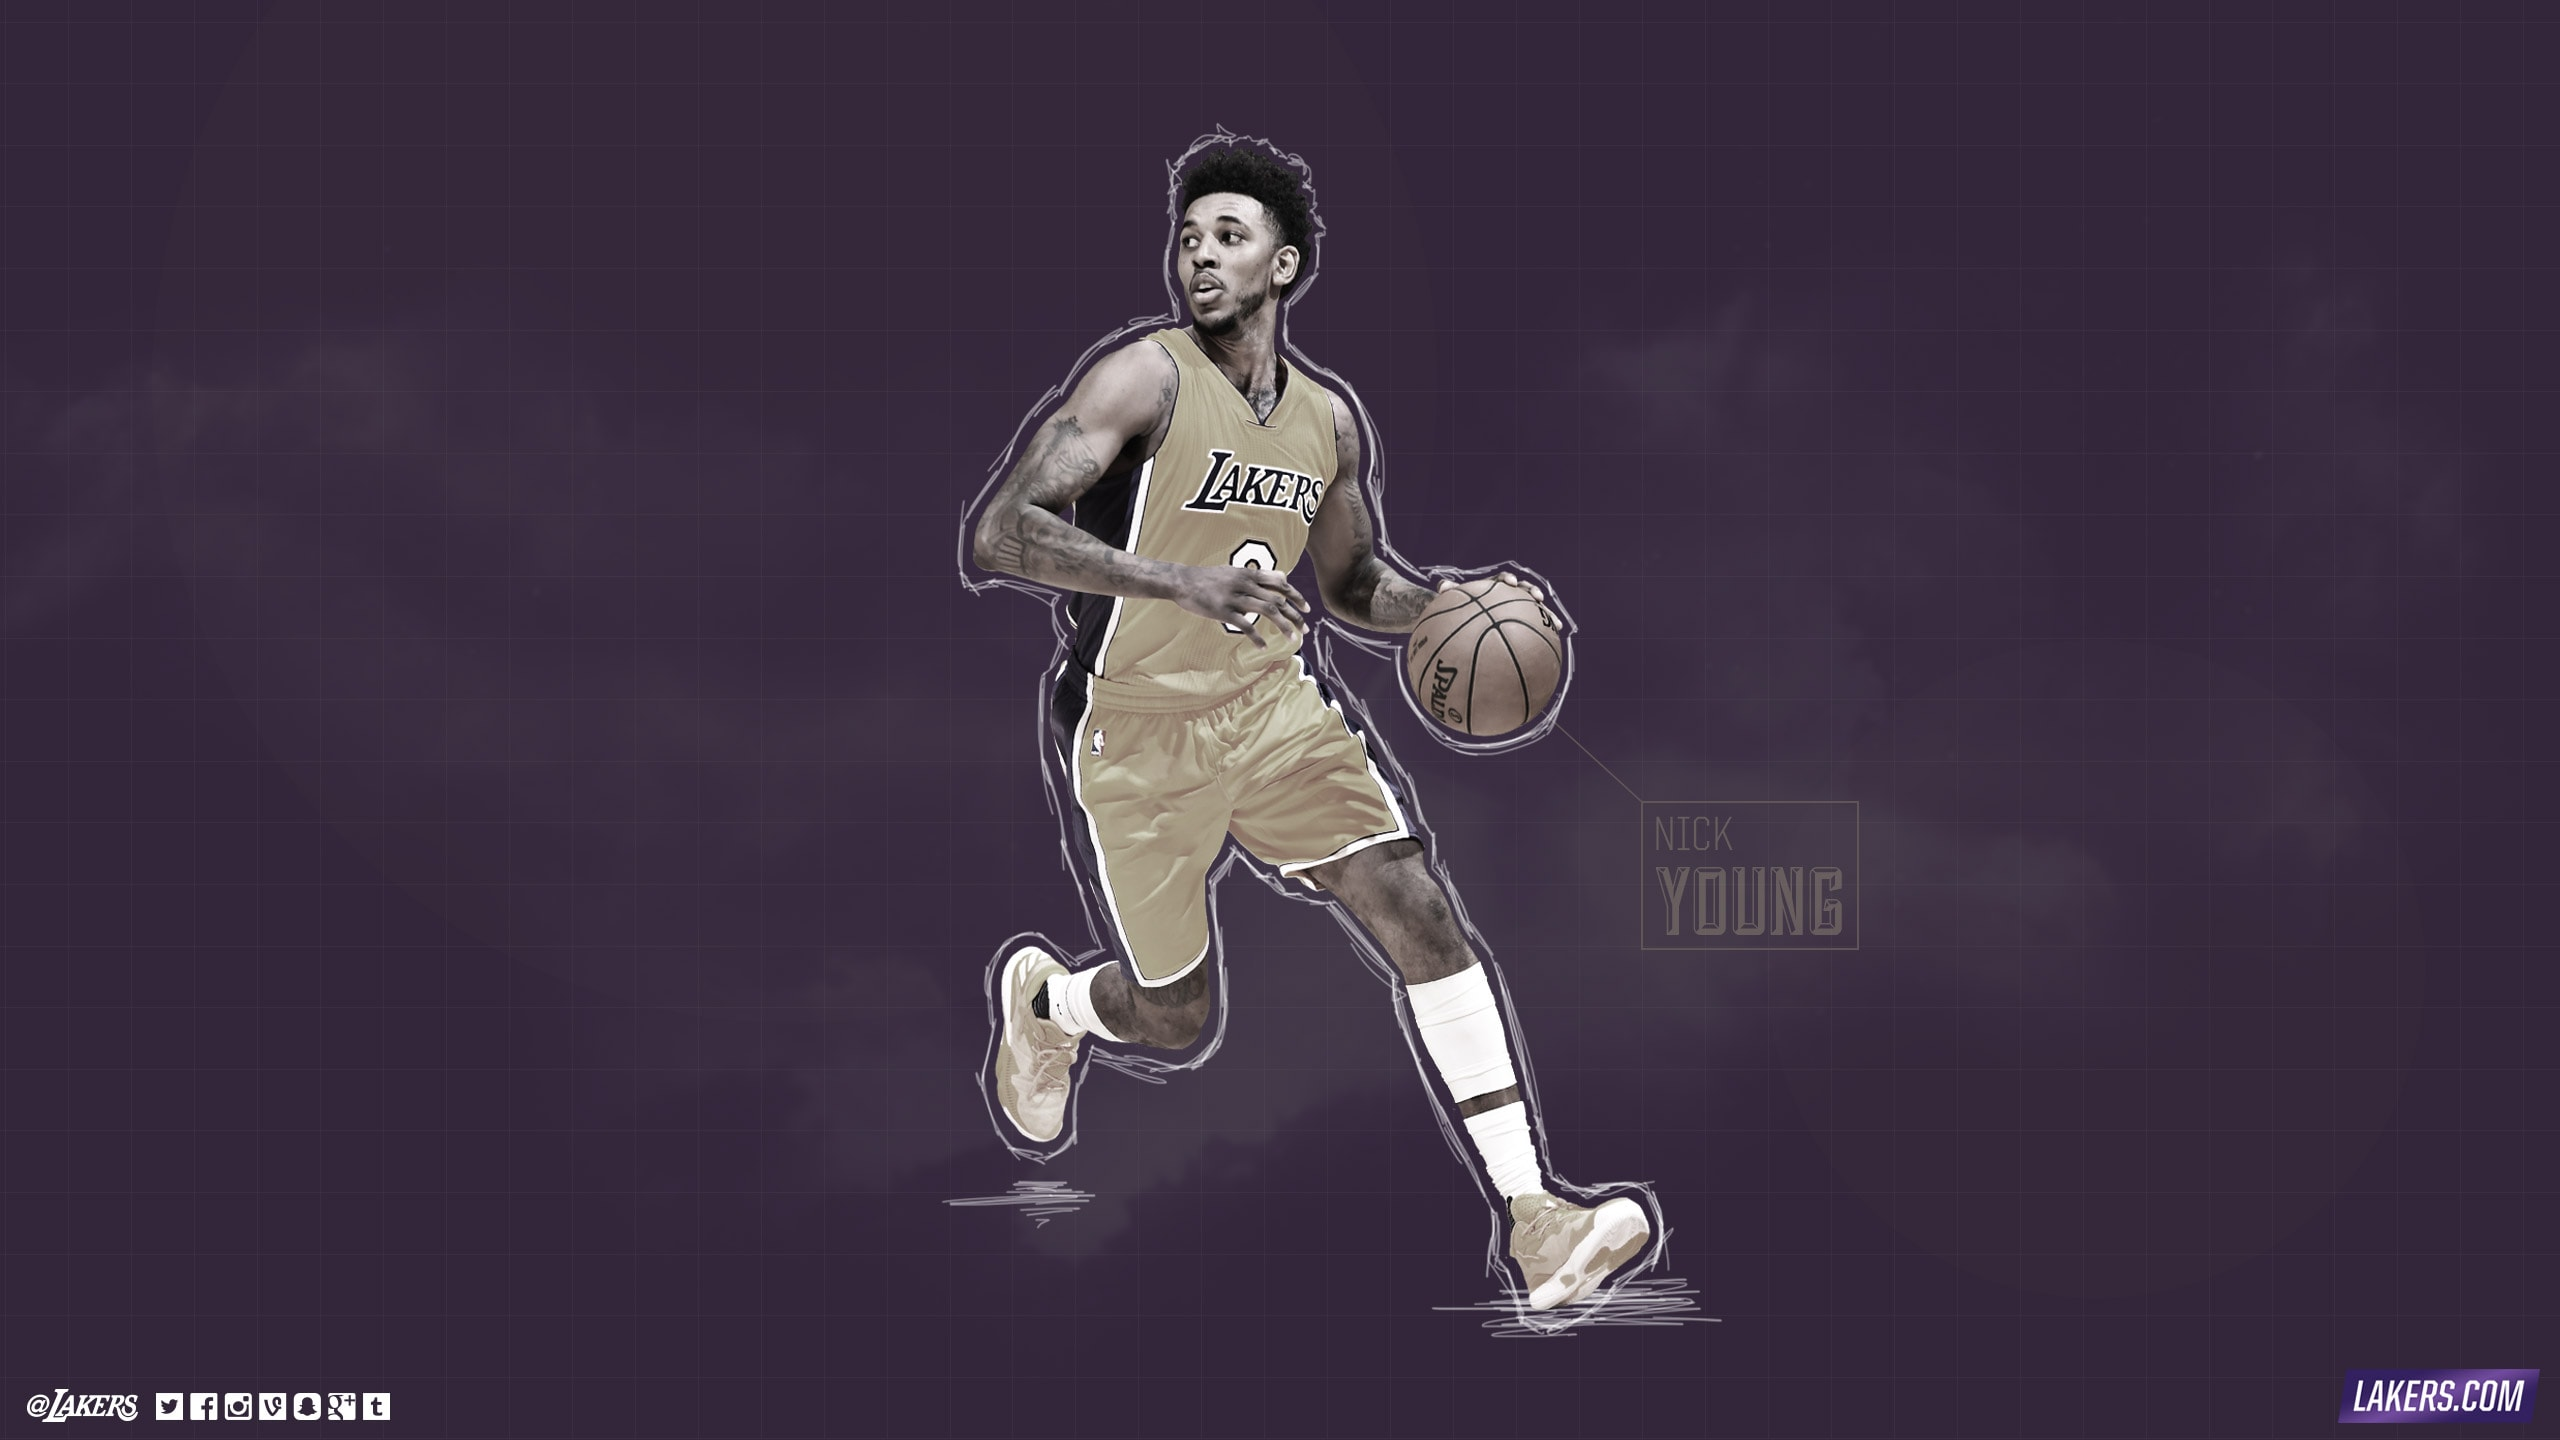 Nick Young Player Wallpaper